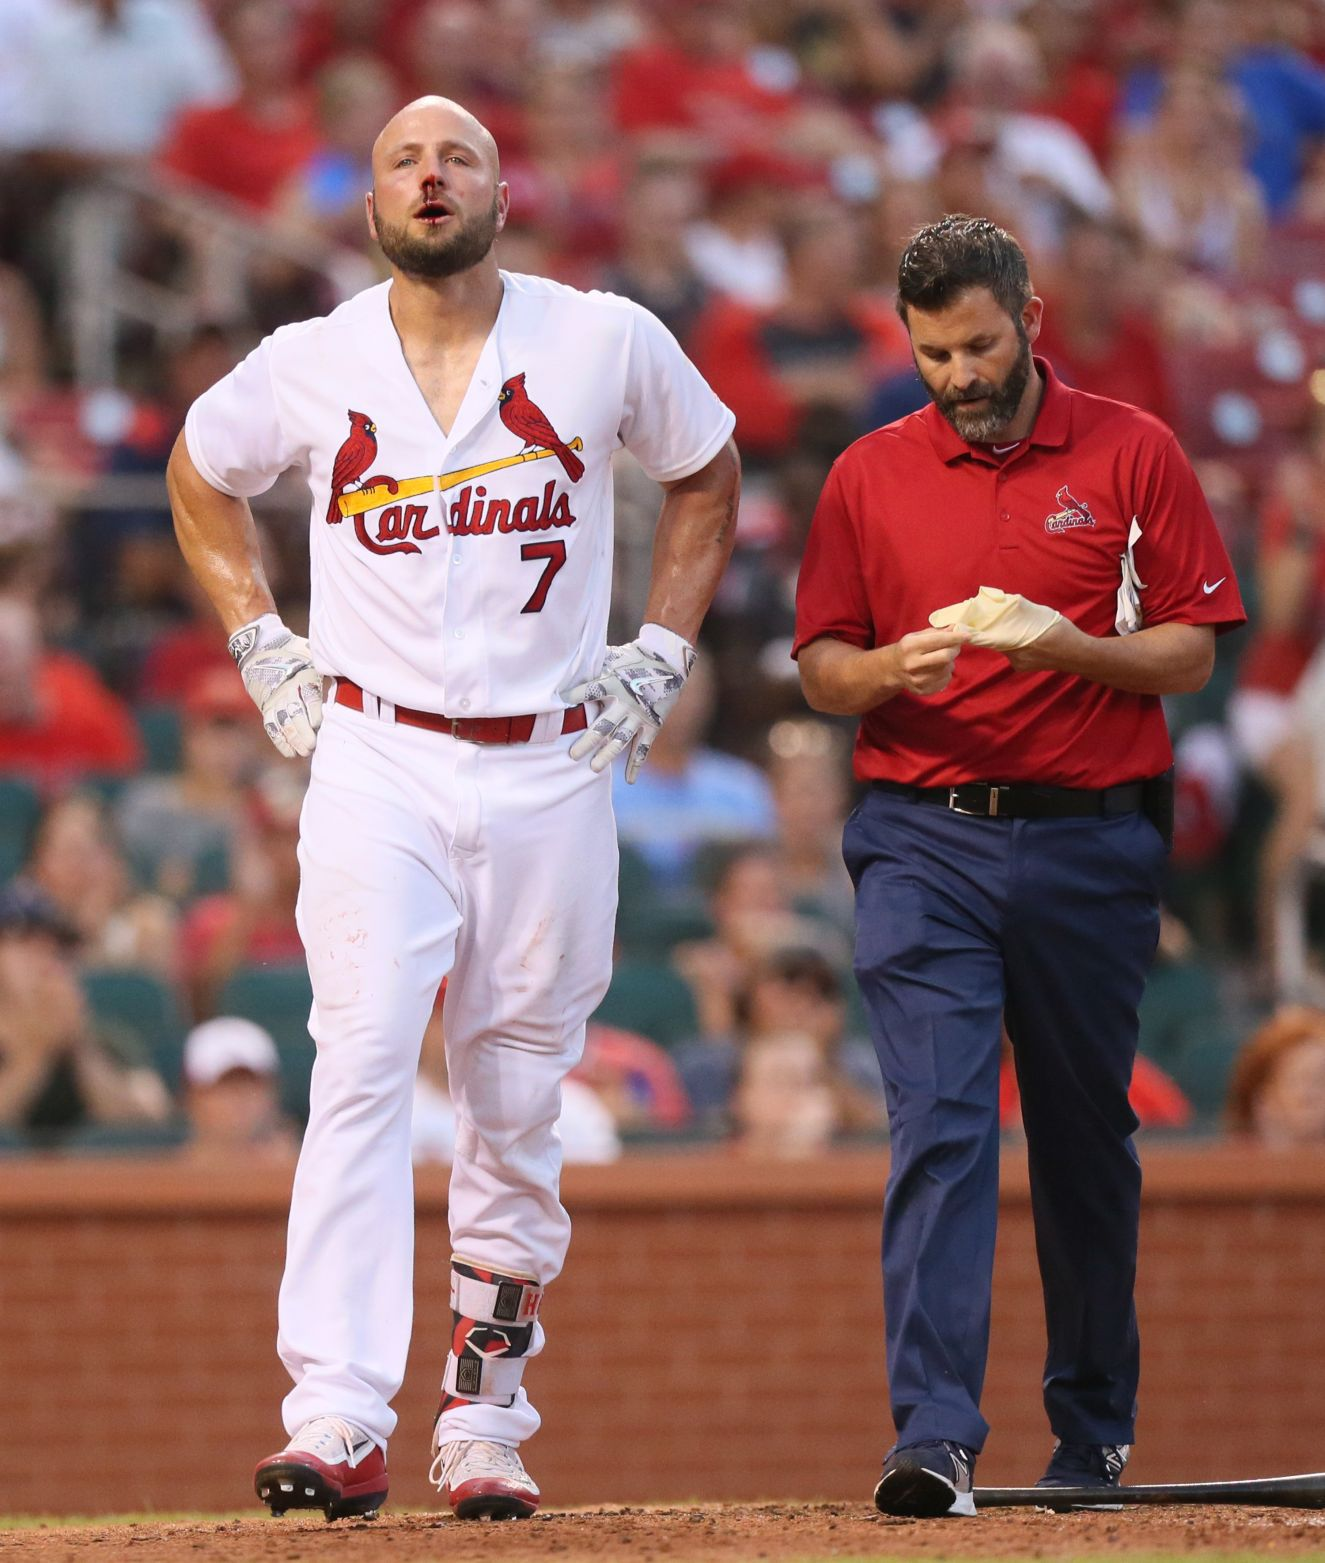 Holliday hit in the face by 95 mph pitch